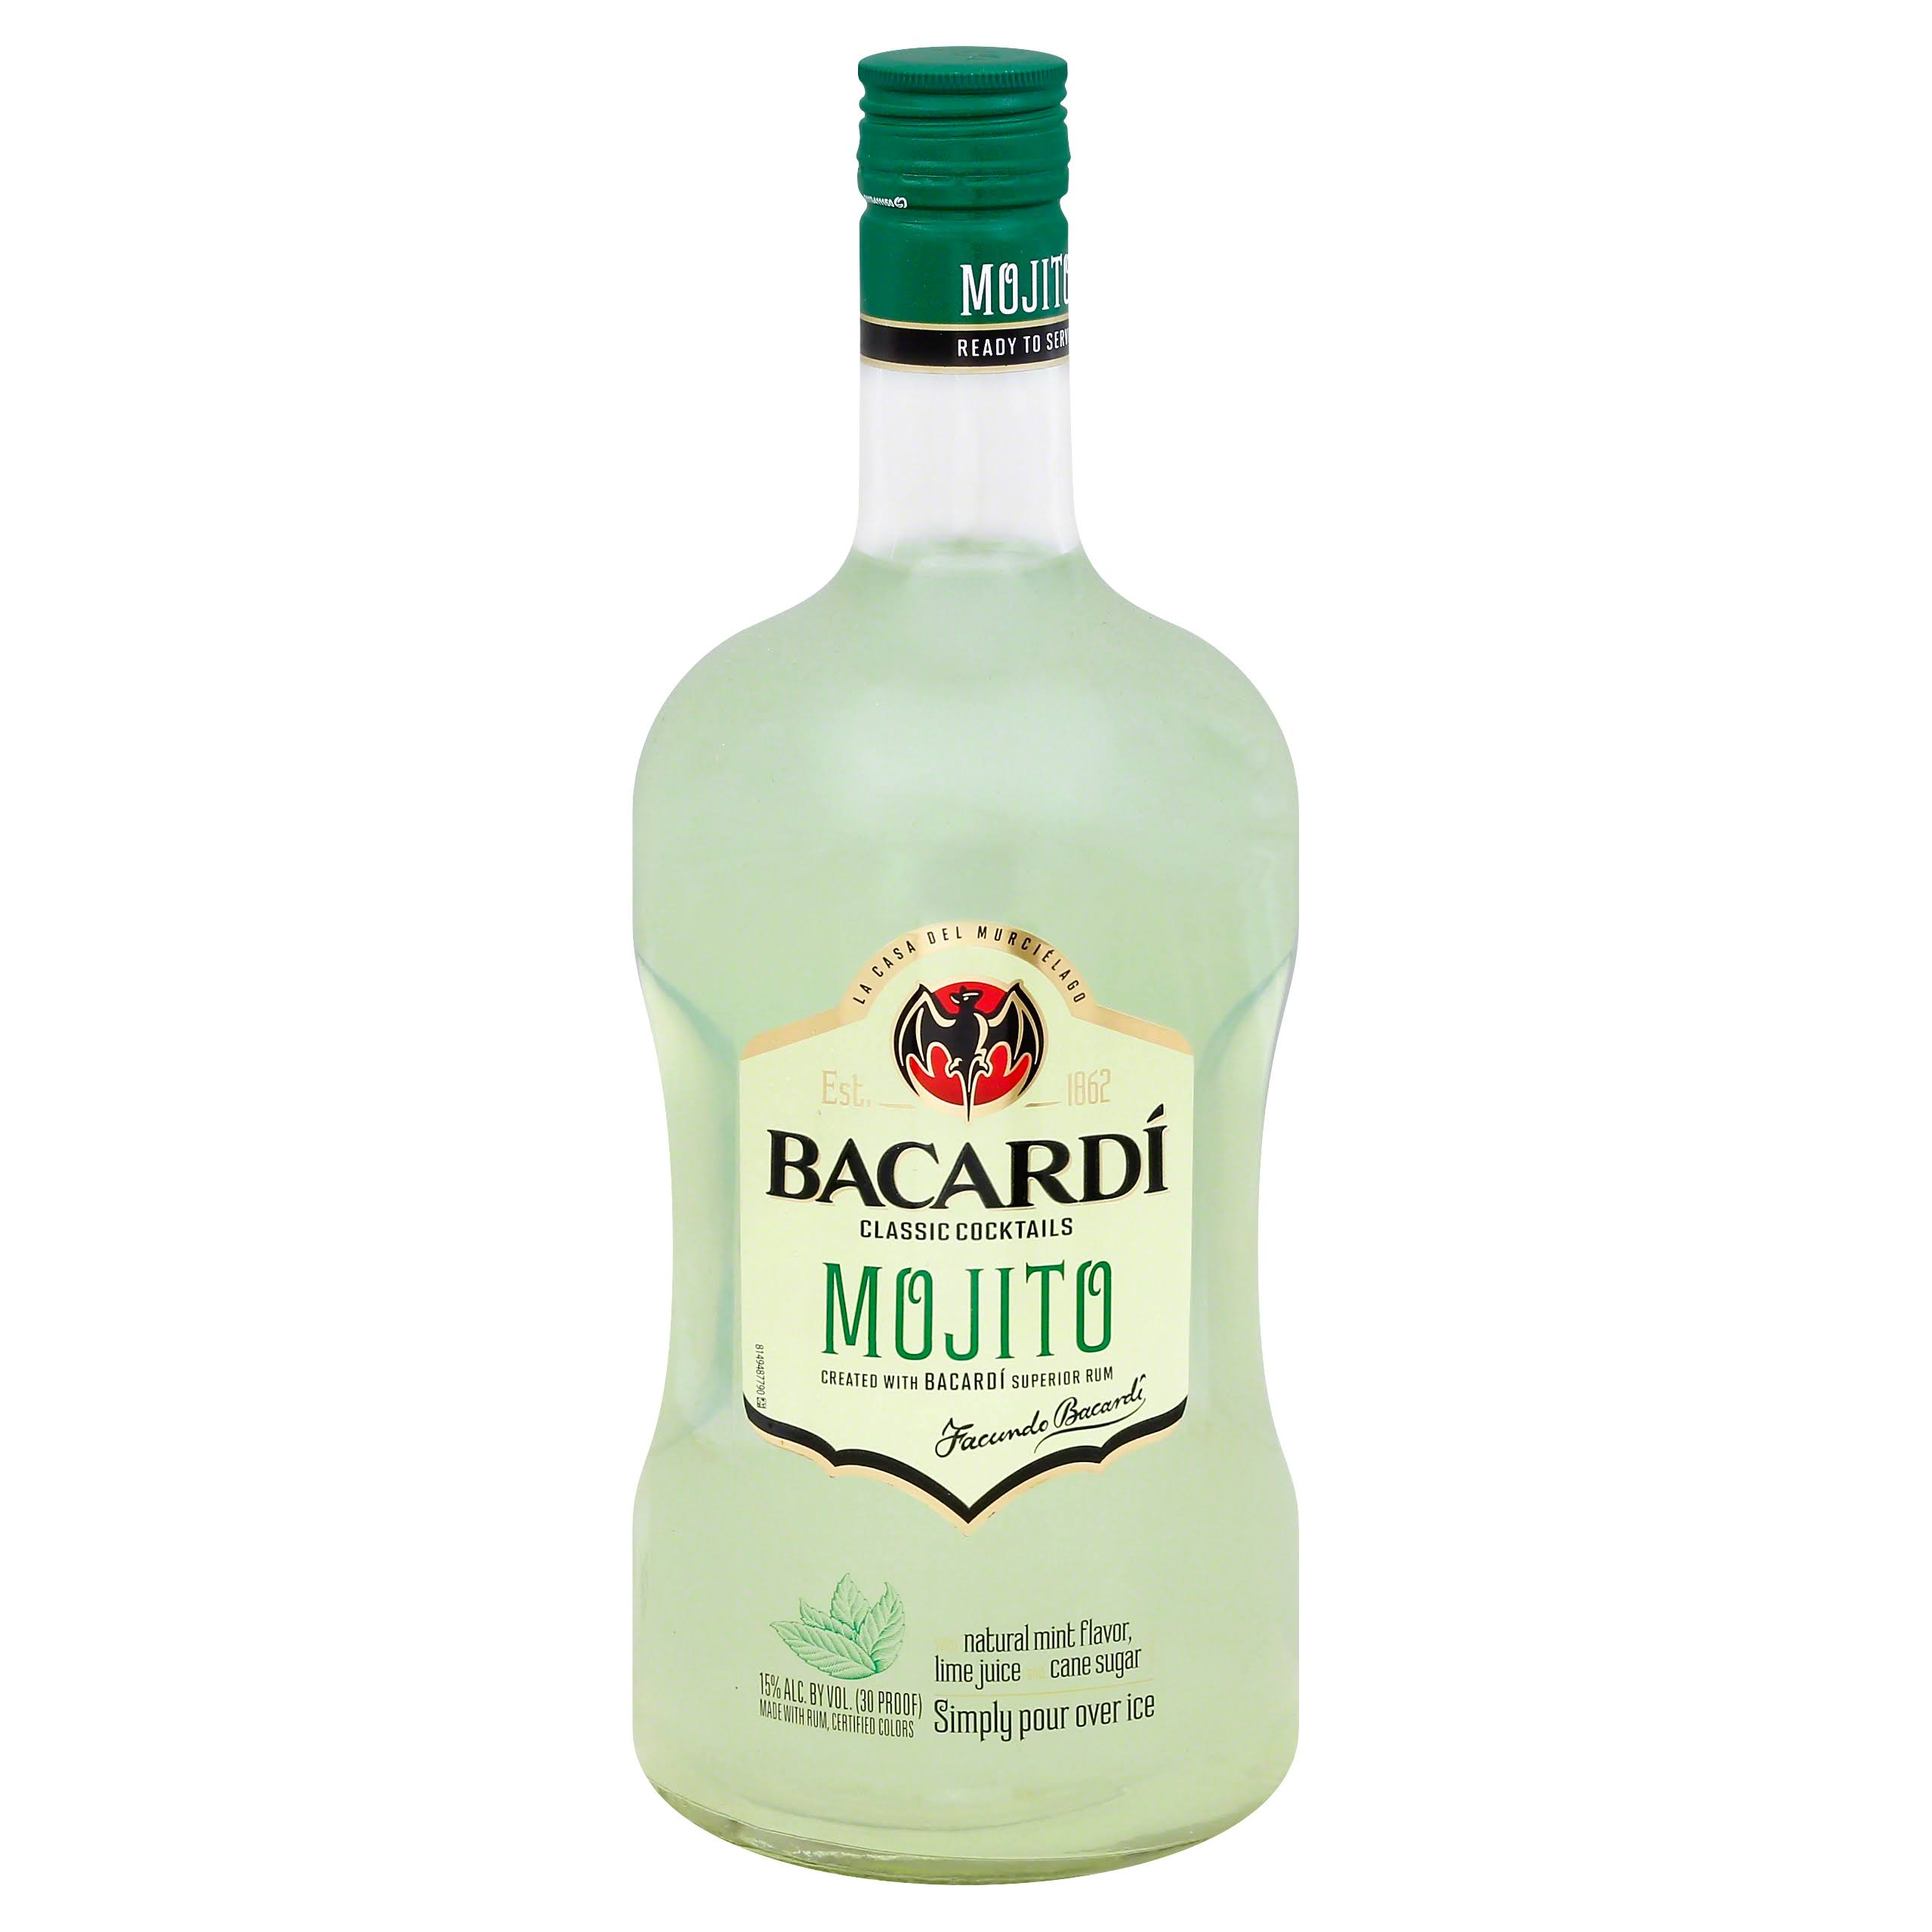 Bacardi Classic Cocktails Mojito - 1.75 lt